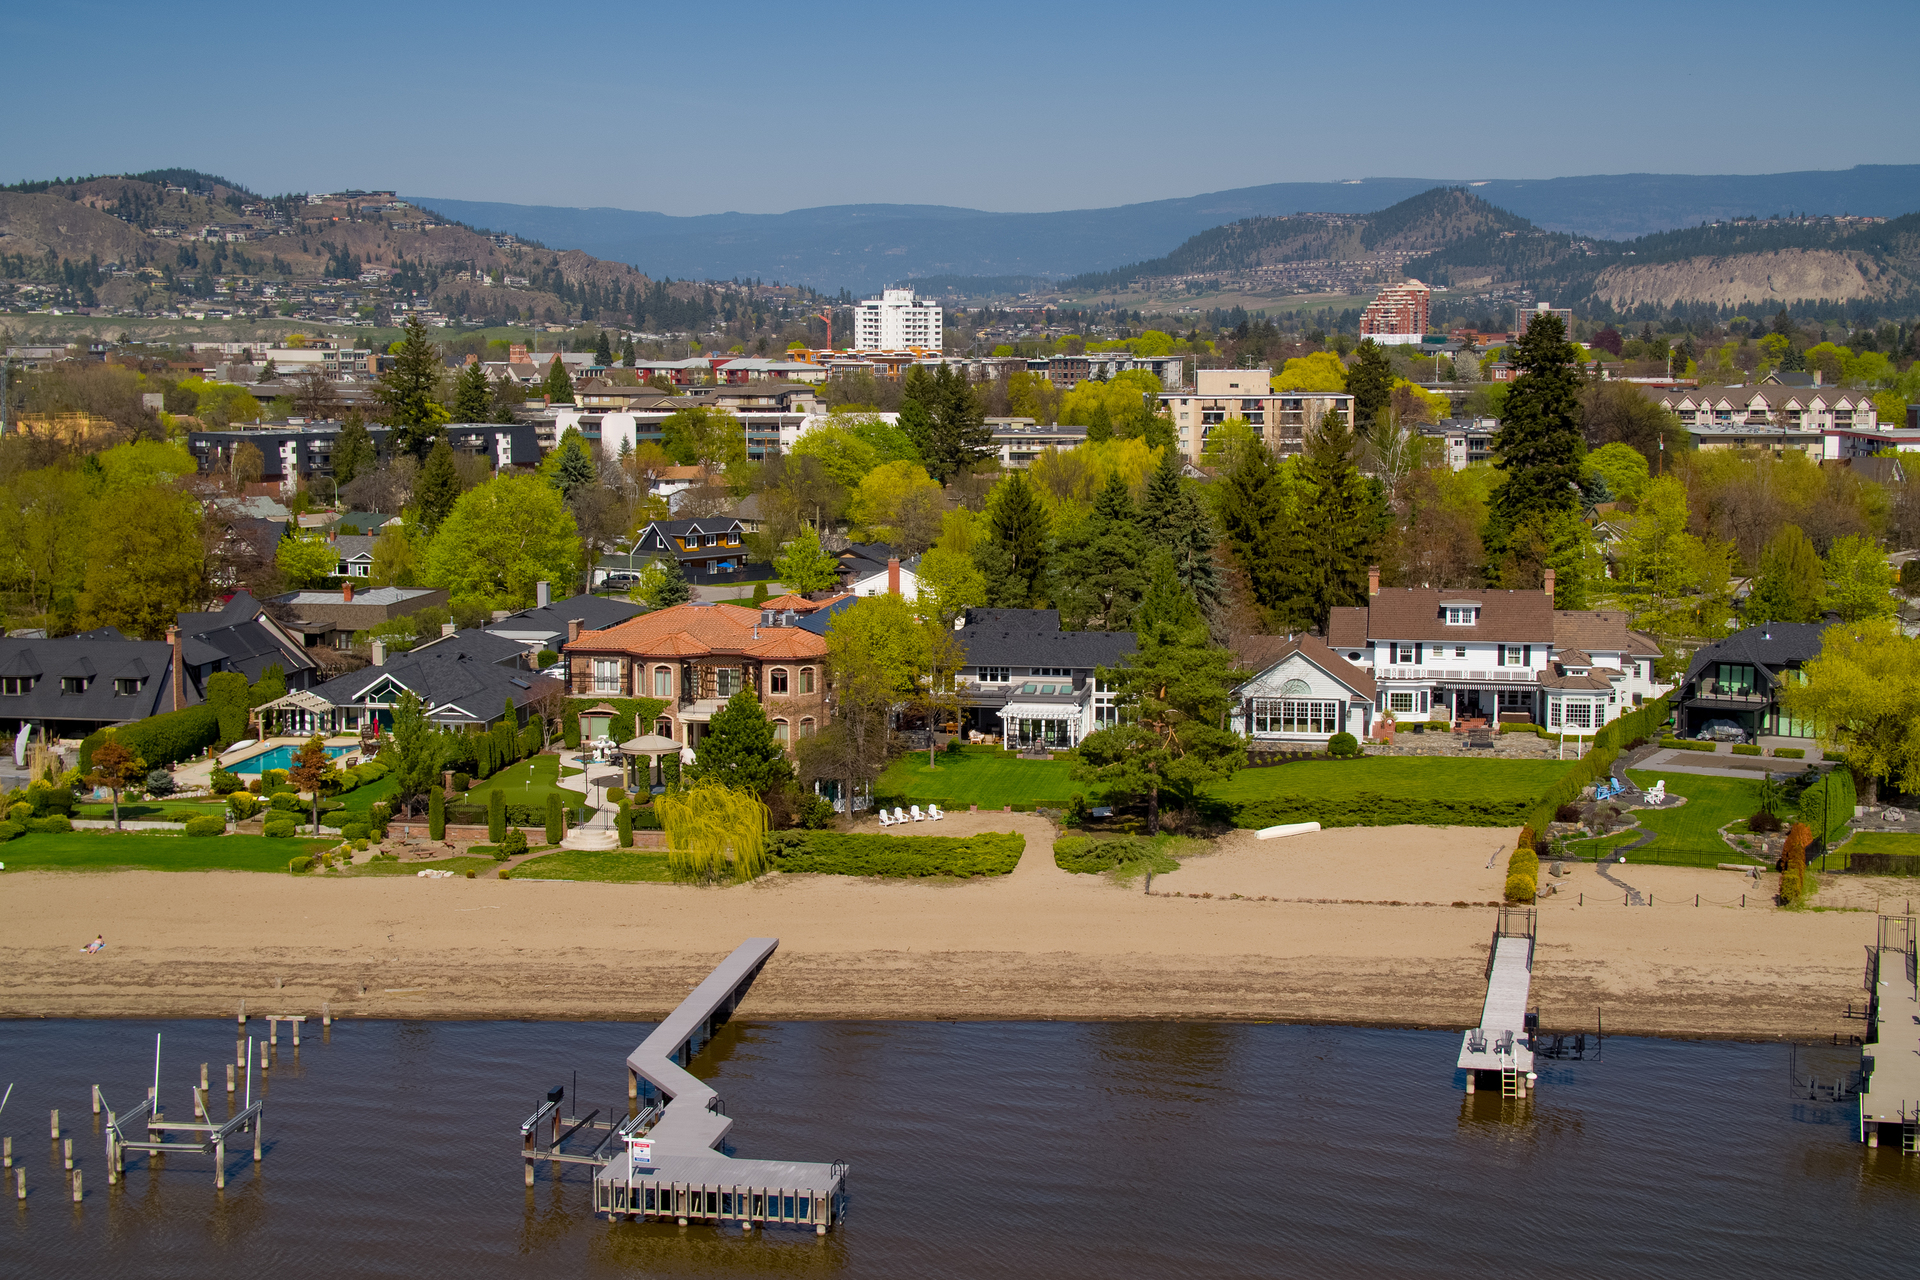 dji_0032-edit at 1986 Abbott Street, Kelowna, Central Okanagan